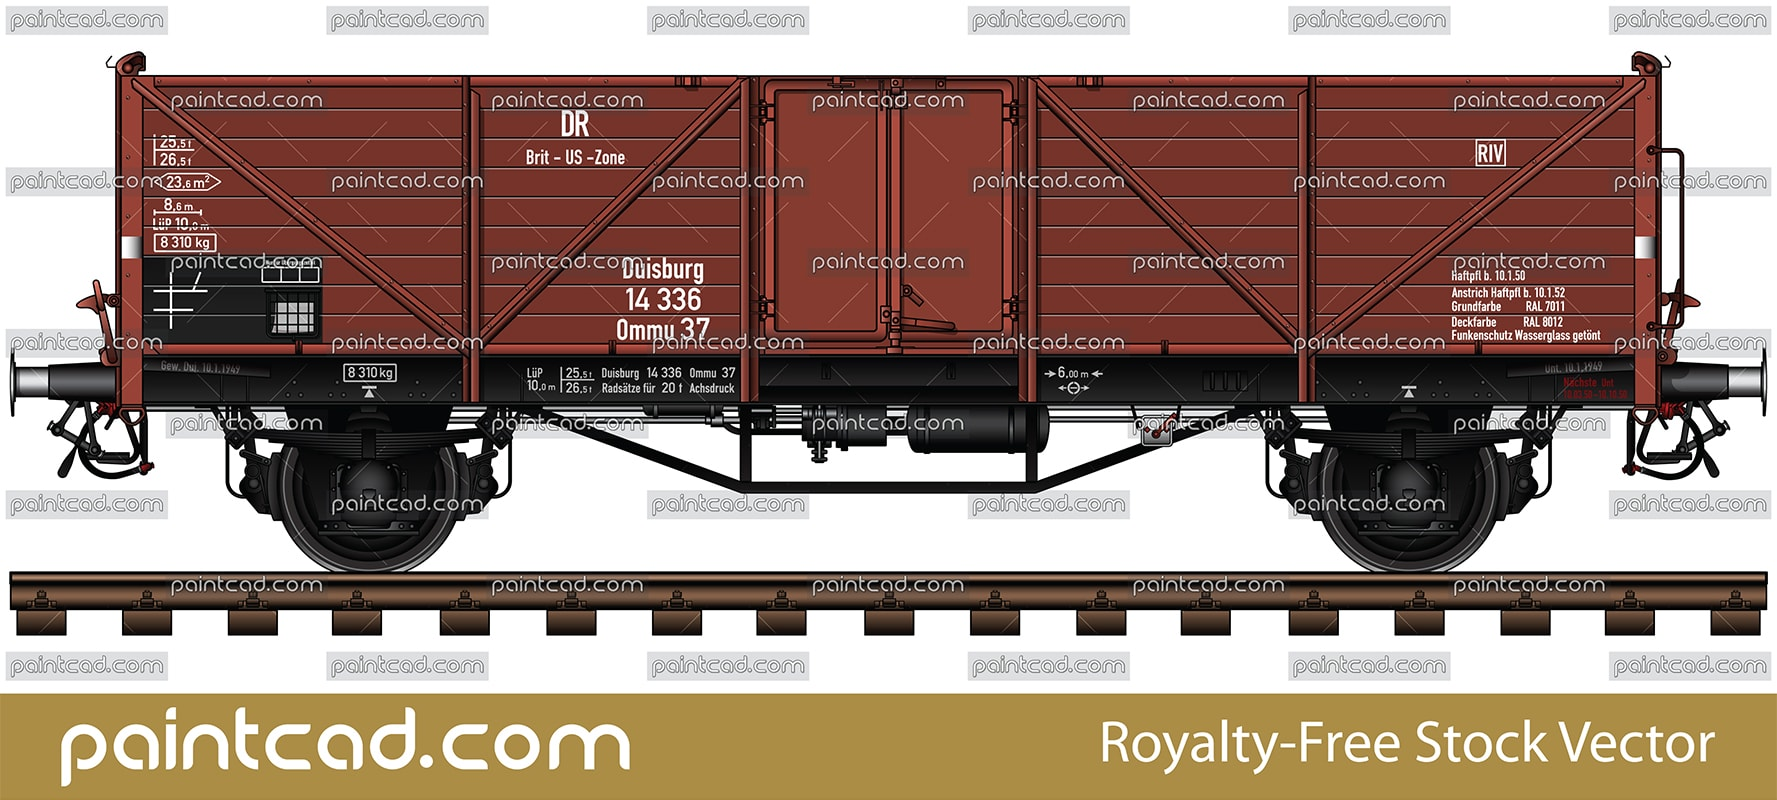 Vector illustration of gondola wagon Ommu 37 type for transport of bulk goods, coal, scrap, steel and wood. These cars are used for the carriage of goods that are relatively resistant to weather conditions. Side view of colored AutoCAD drawing with railway tracks, all technical parameters and markings. DR is the abbreviation of the German National Railway after World War II. The car was used by the German authorities in the area of English and American control after the division of Germany of zones of influence after the war (on left have an inscription DR, Brit-US Zone and Duisburg). Offener güterwagen. Isolated object over white background.